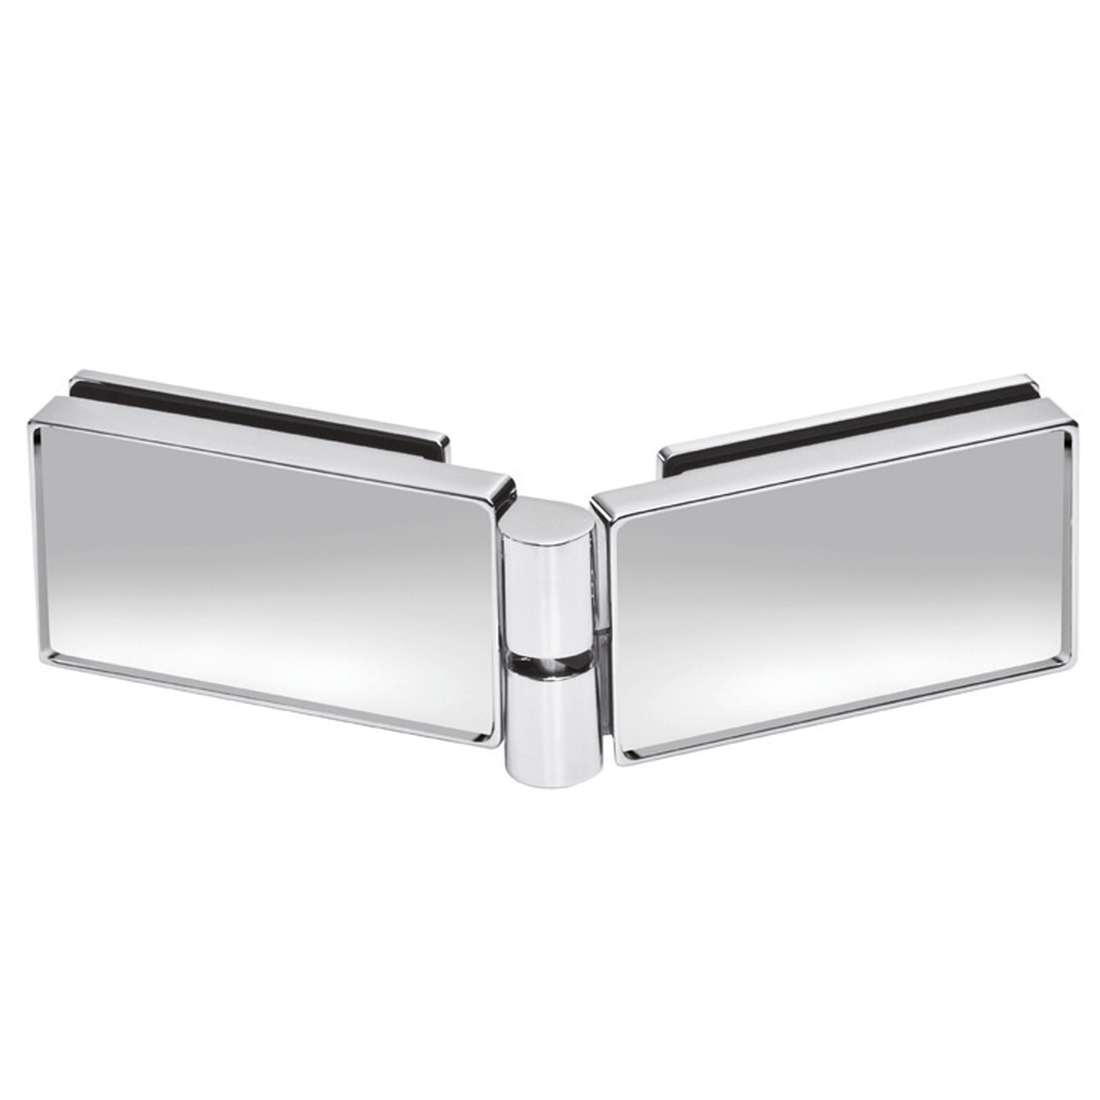 STYLIT 135° - DOOR HINGE I GLASS - GLASS, DIN RIGHT